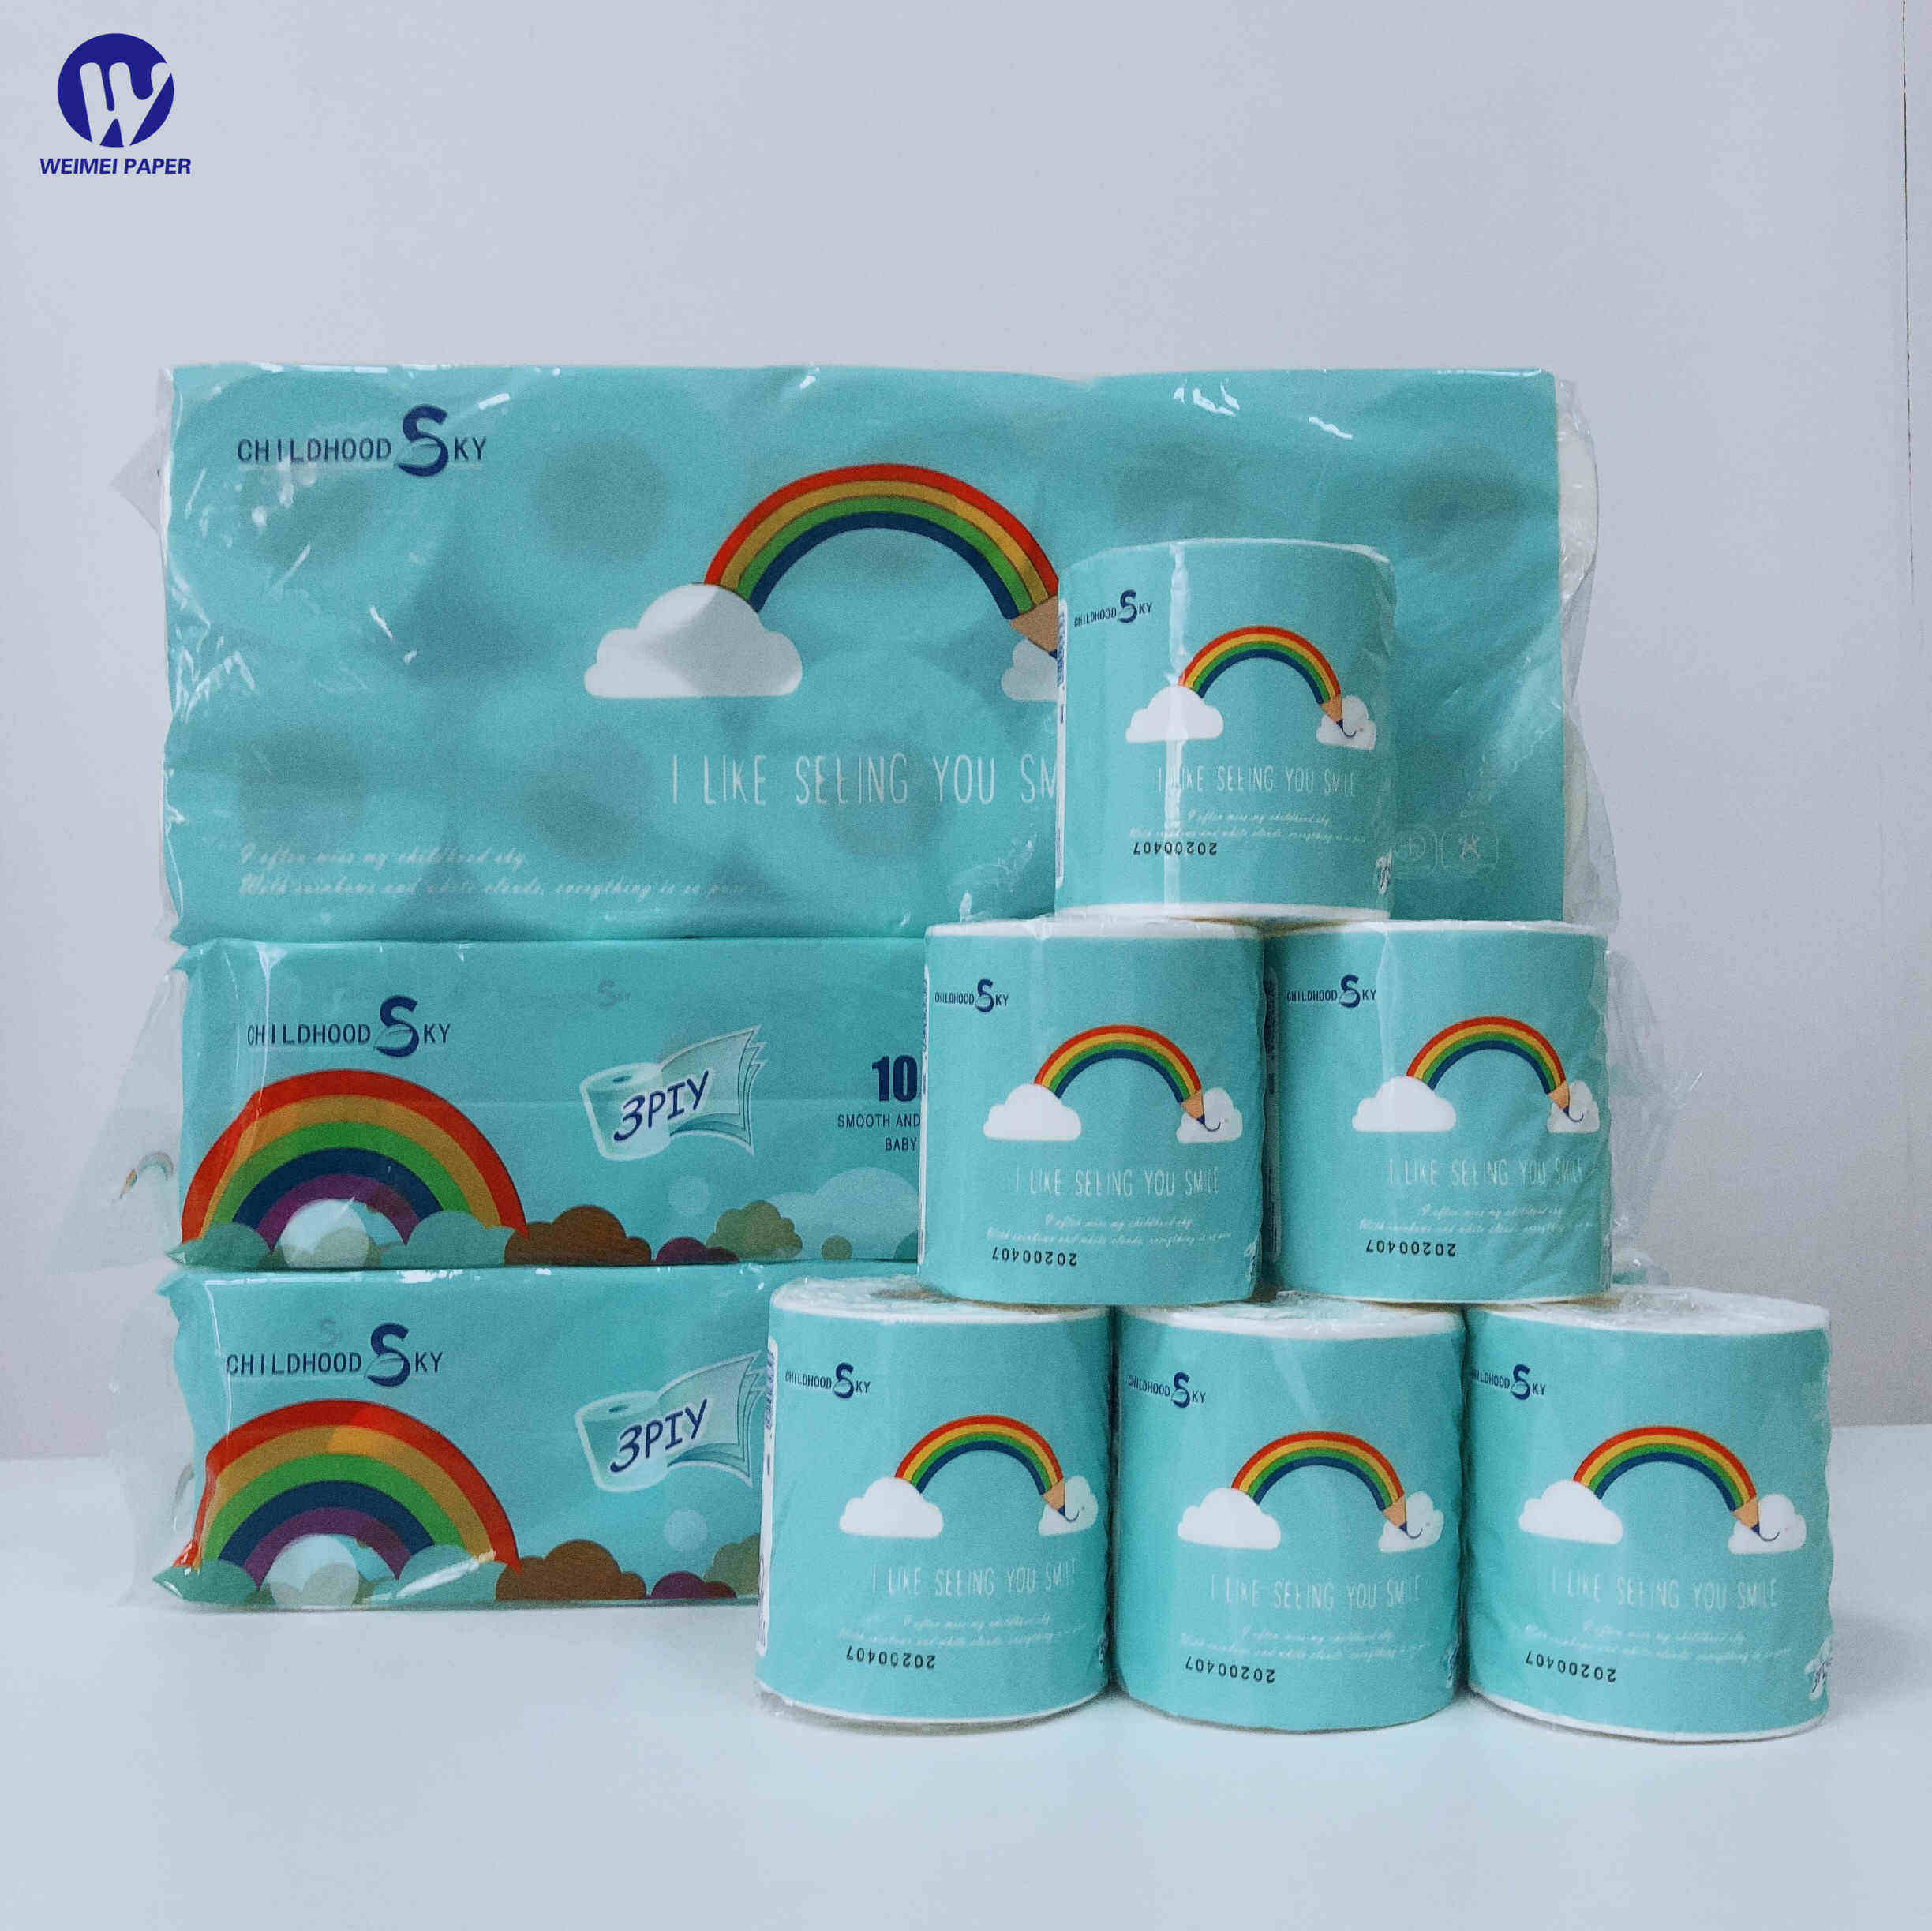 Core Toilet Paper Ready to Ship Virgin Wood Pulp Paper Tissue English Packaging roll paper towels